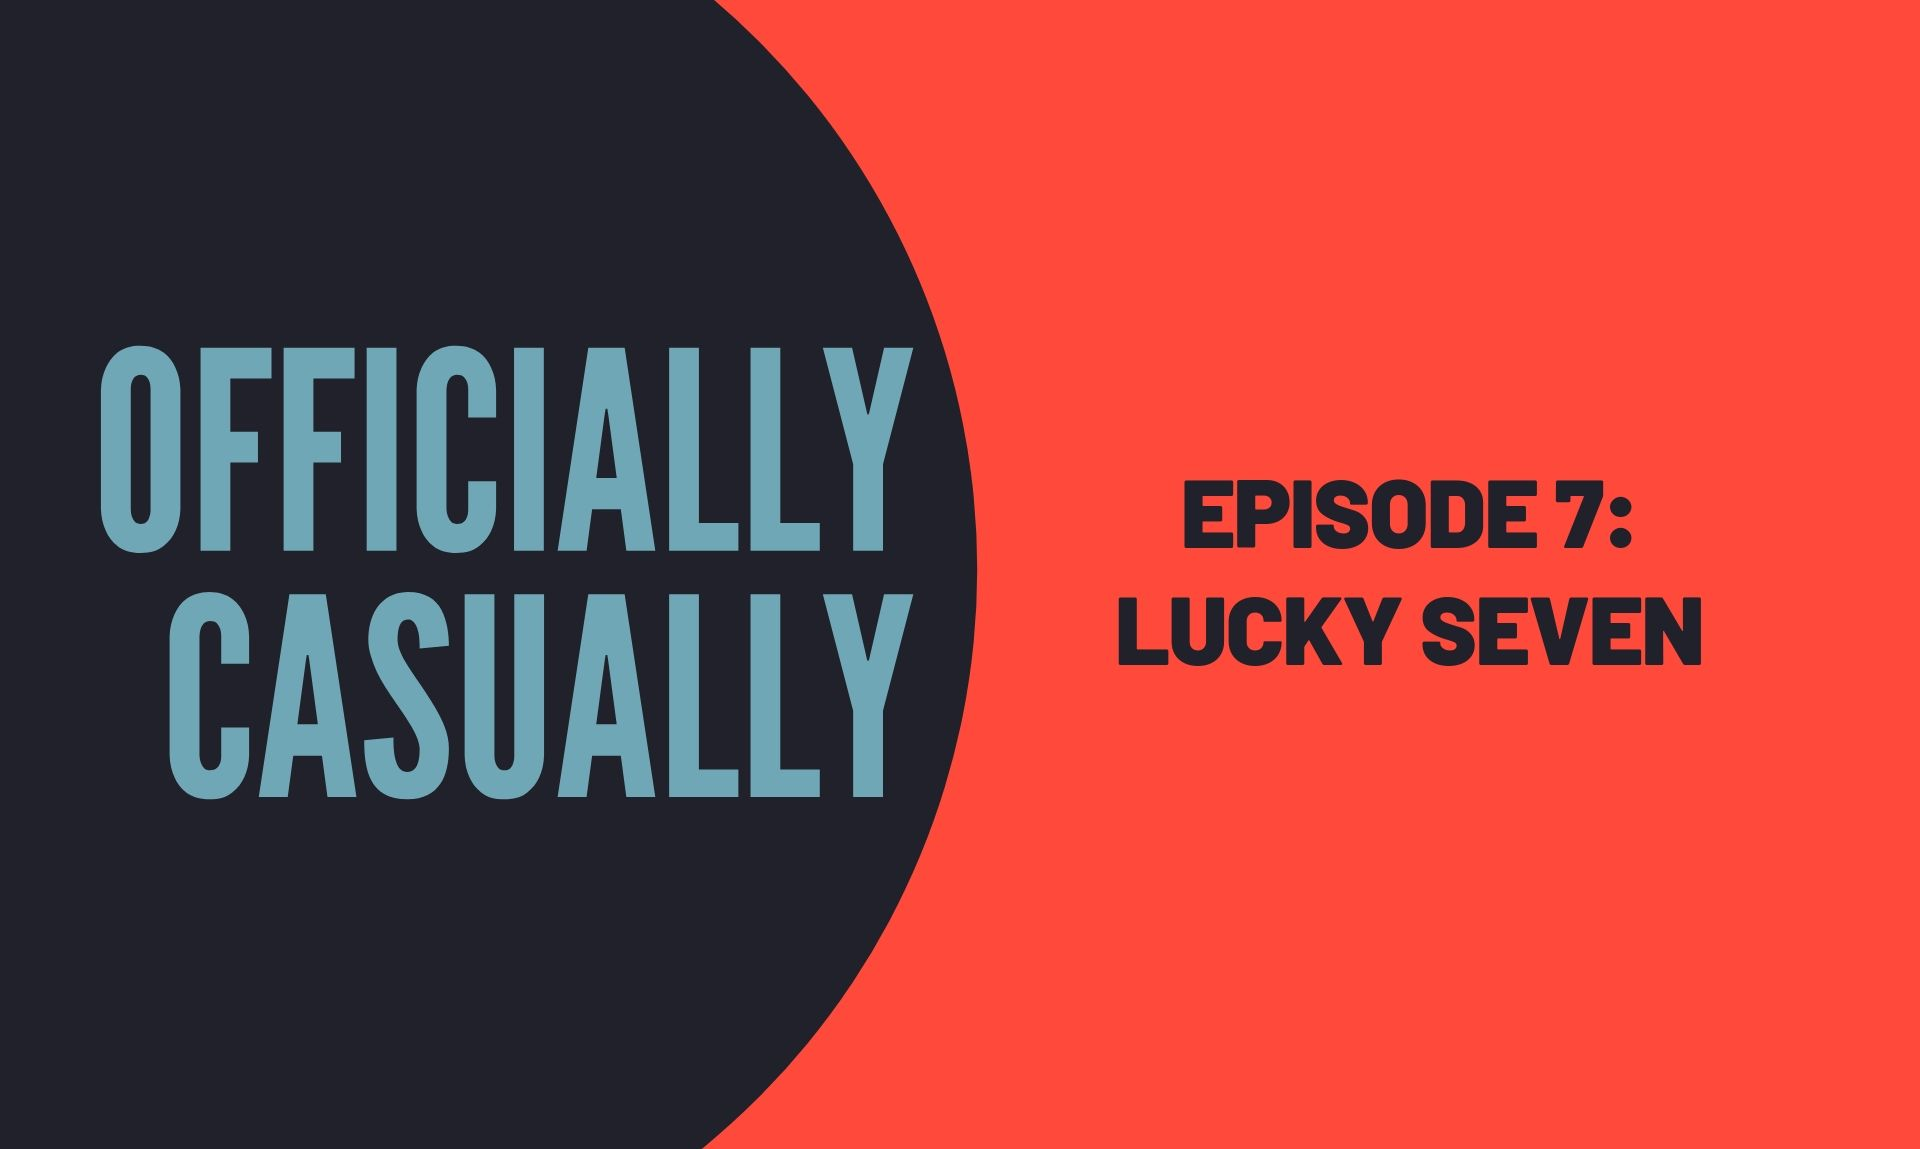 #7 EPISODE: LUCKY SEVEN